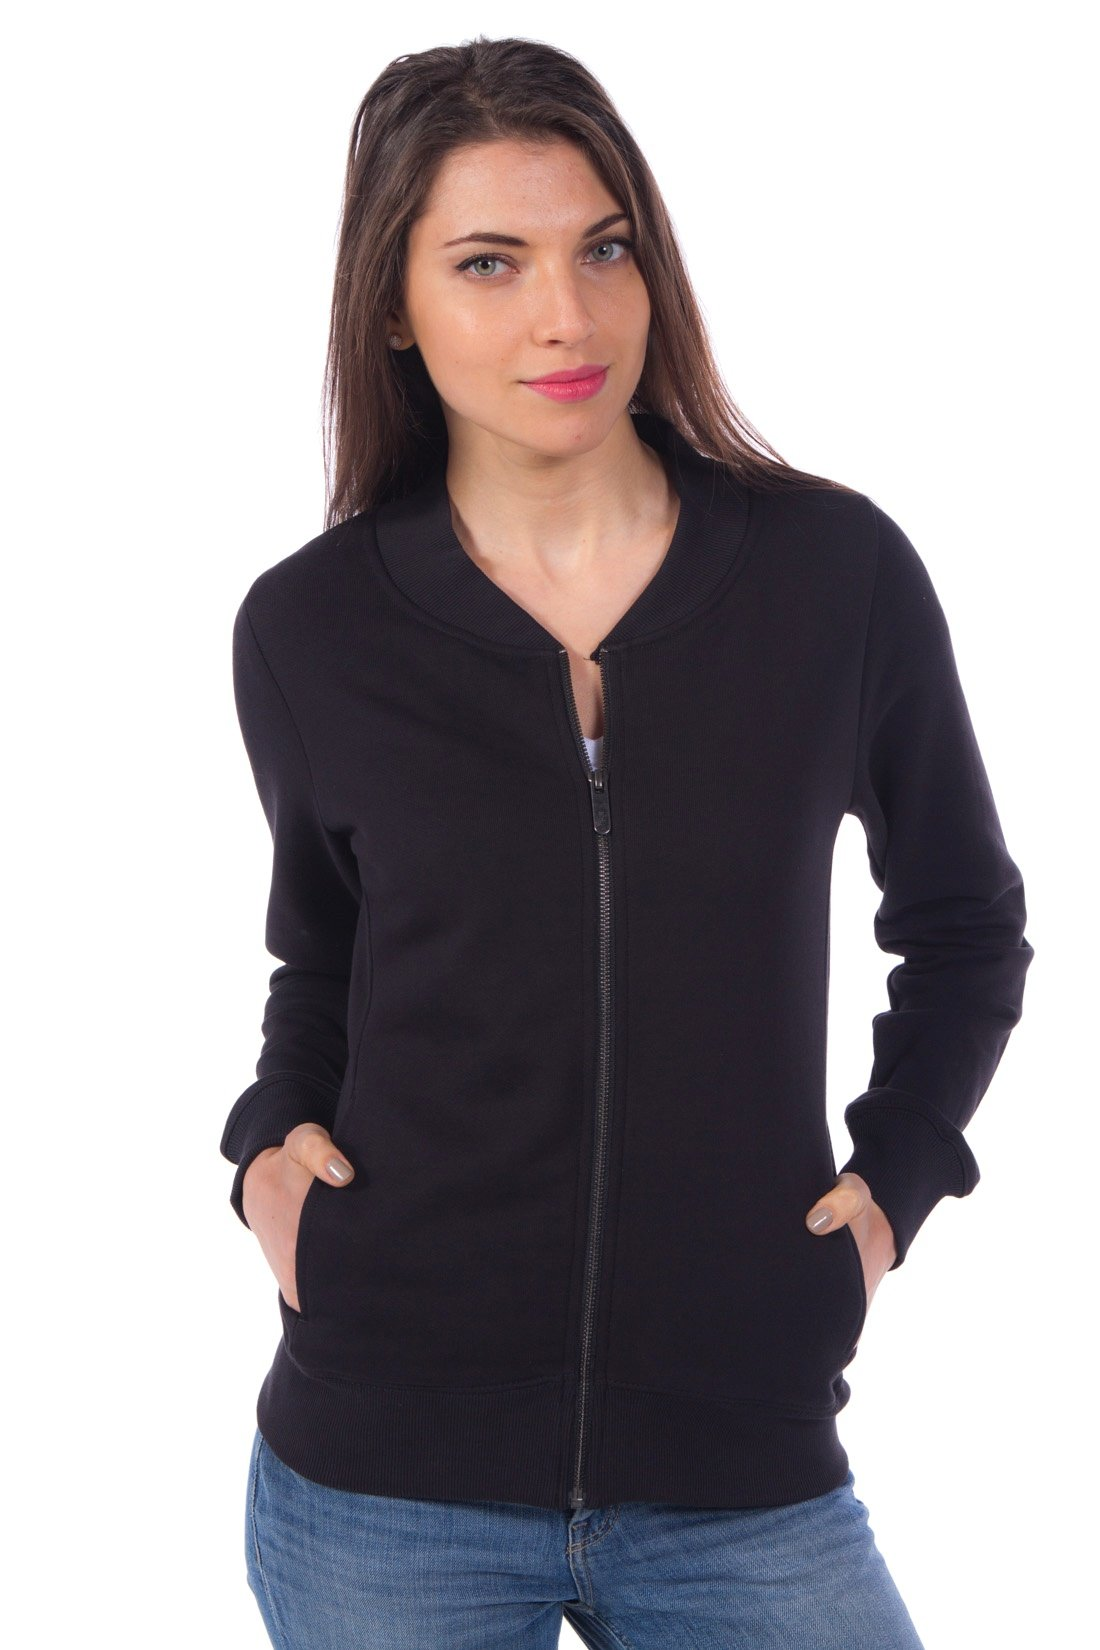 Ably Apparel Cindy (Large, Black)